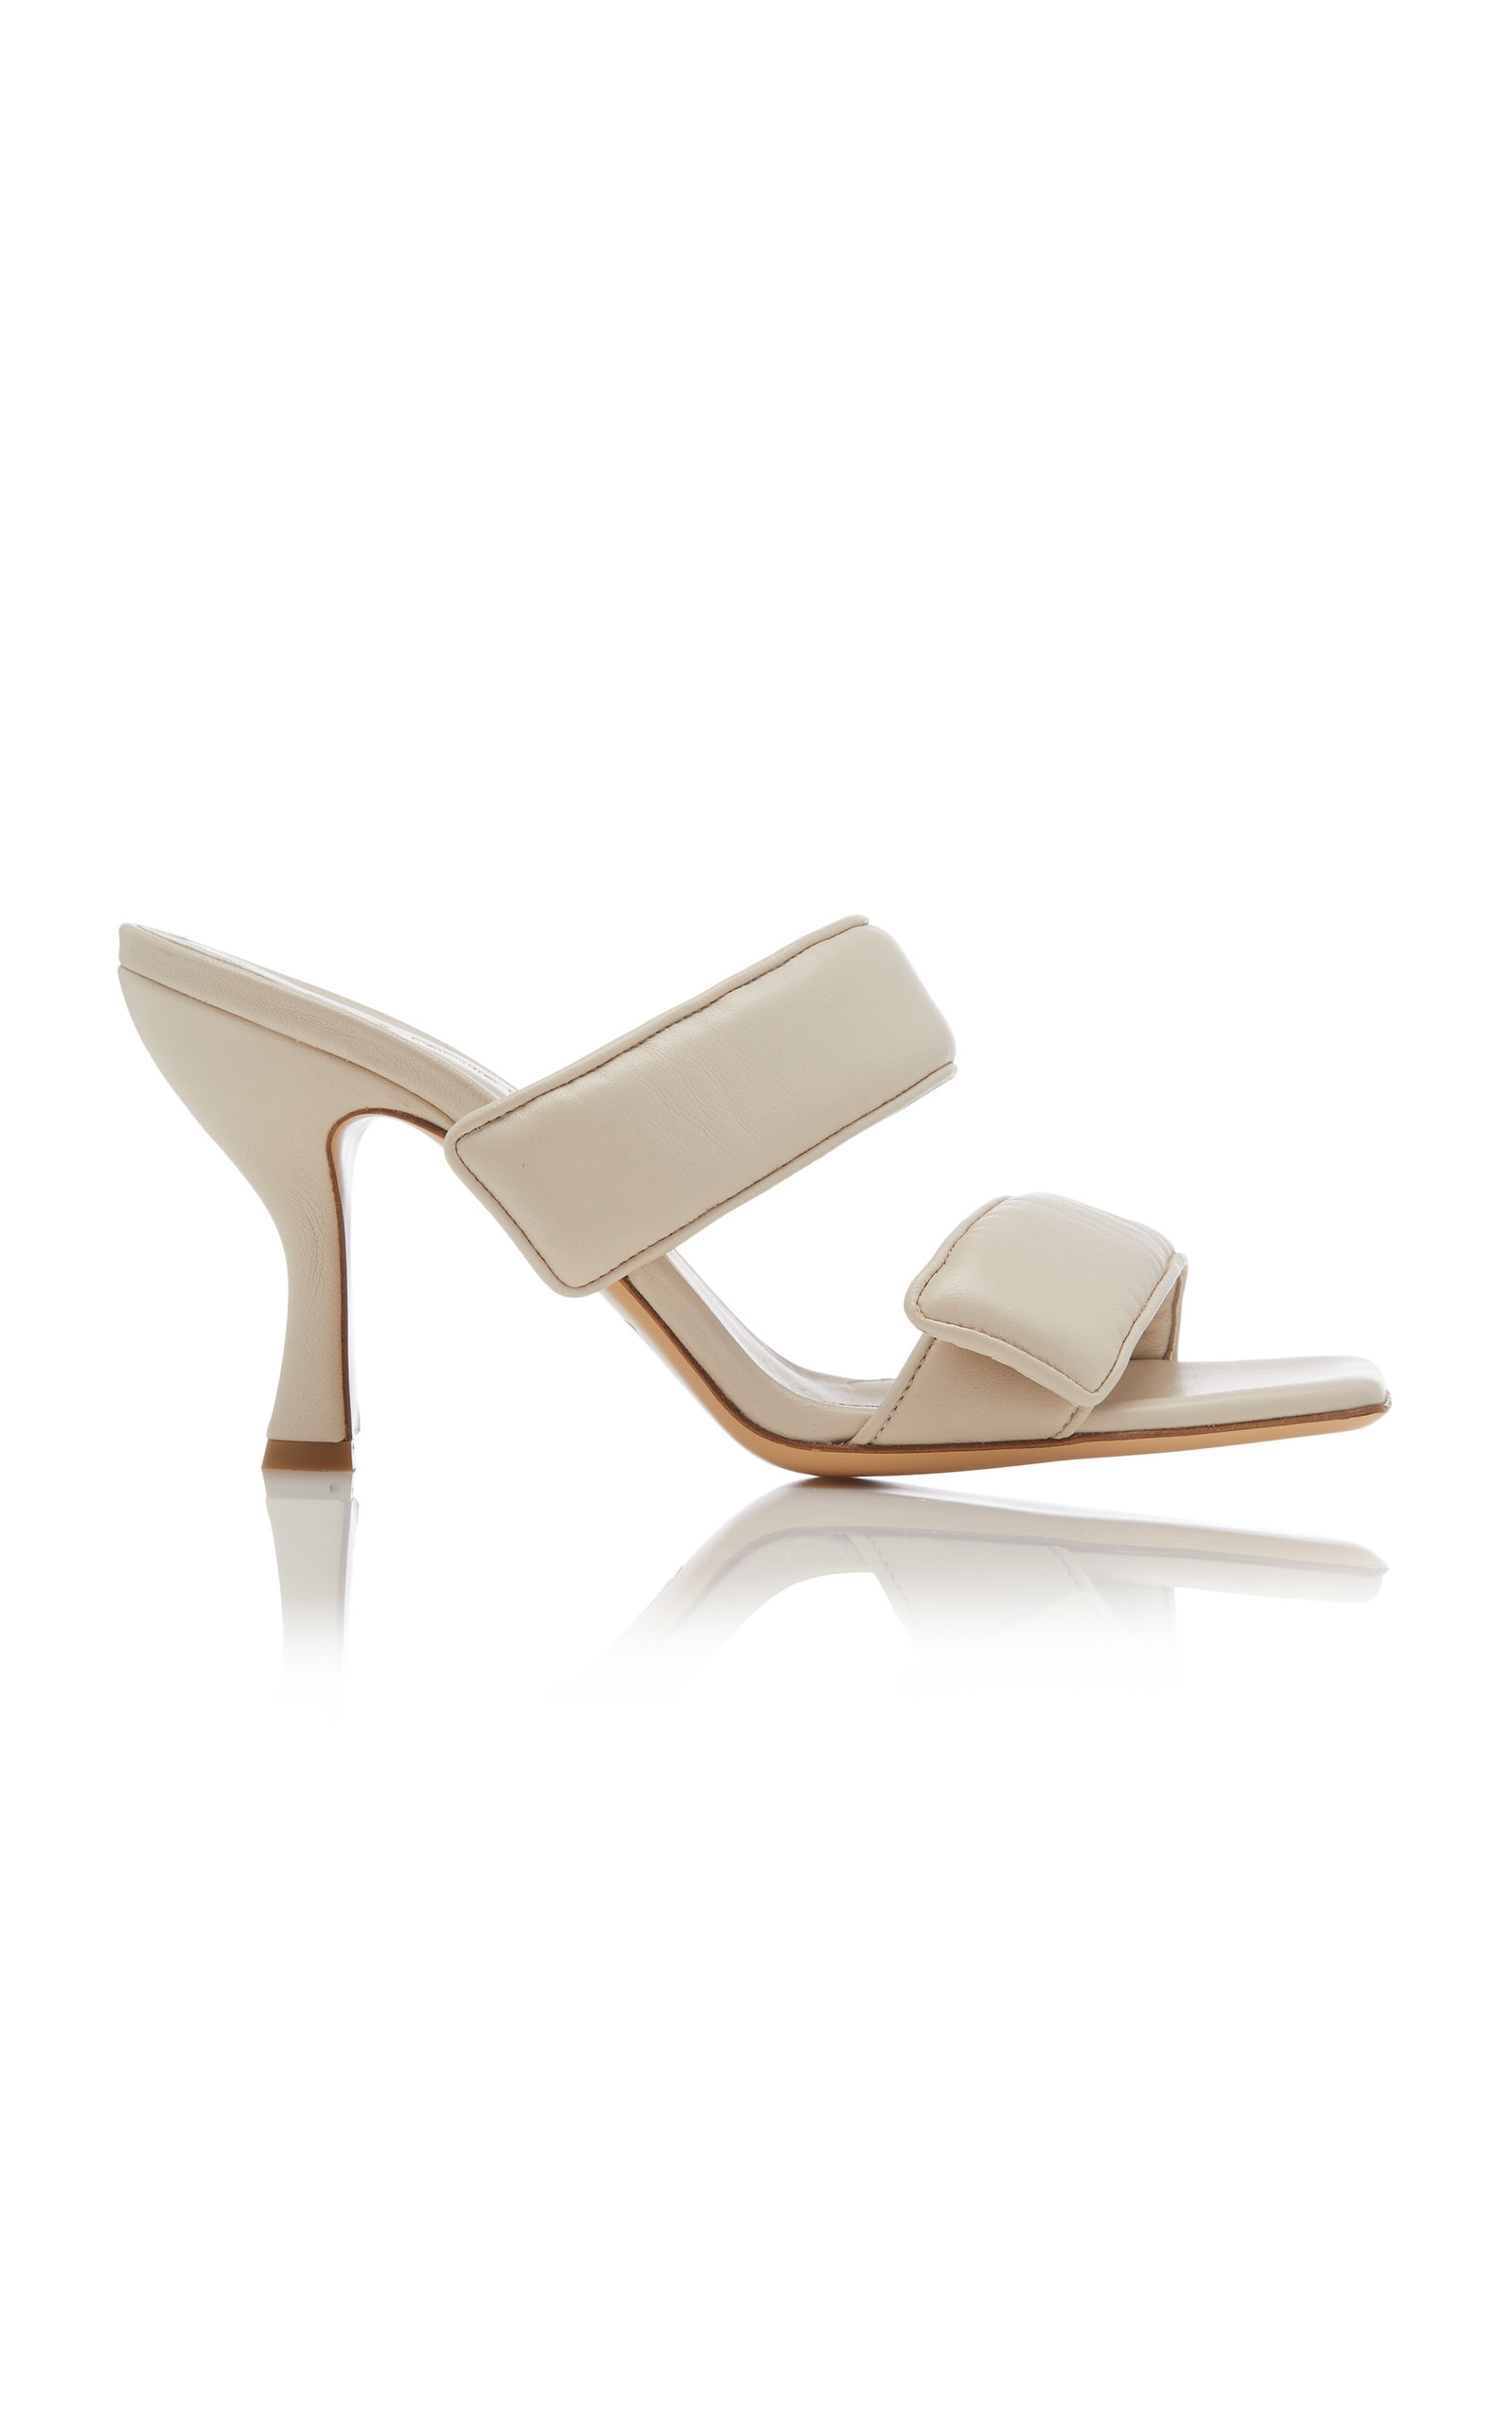 Women's Padded Leather Sandals